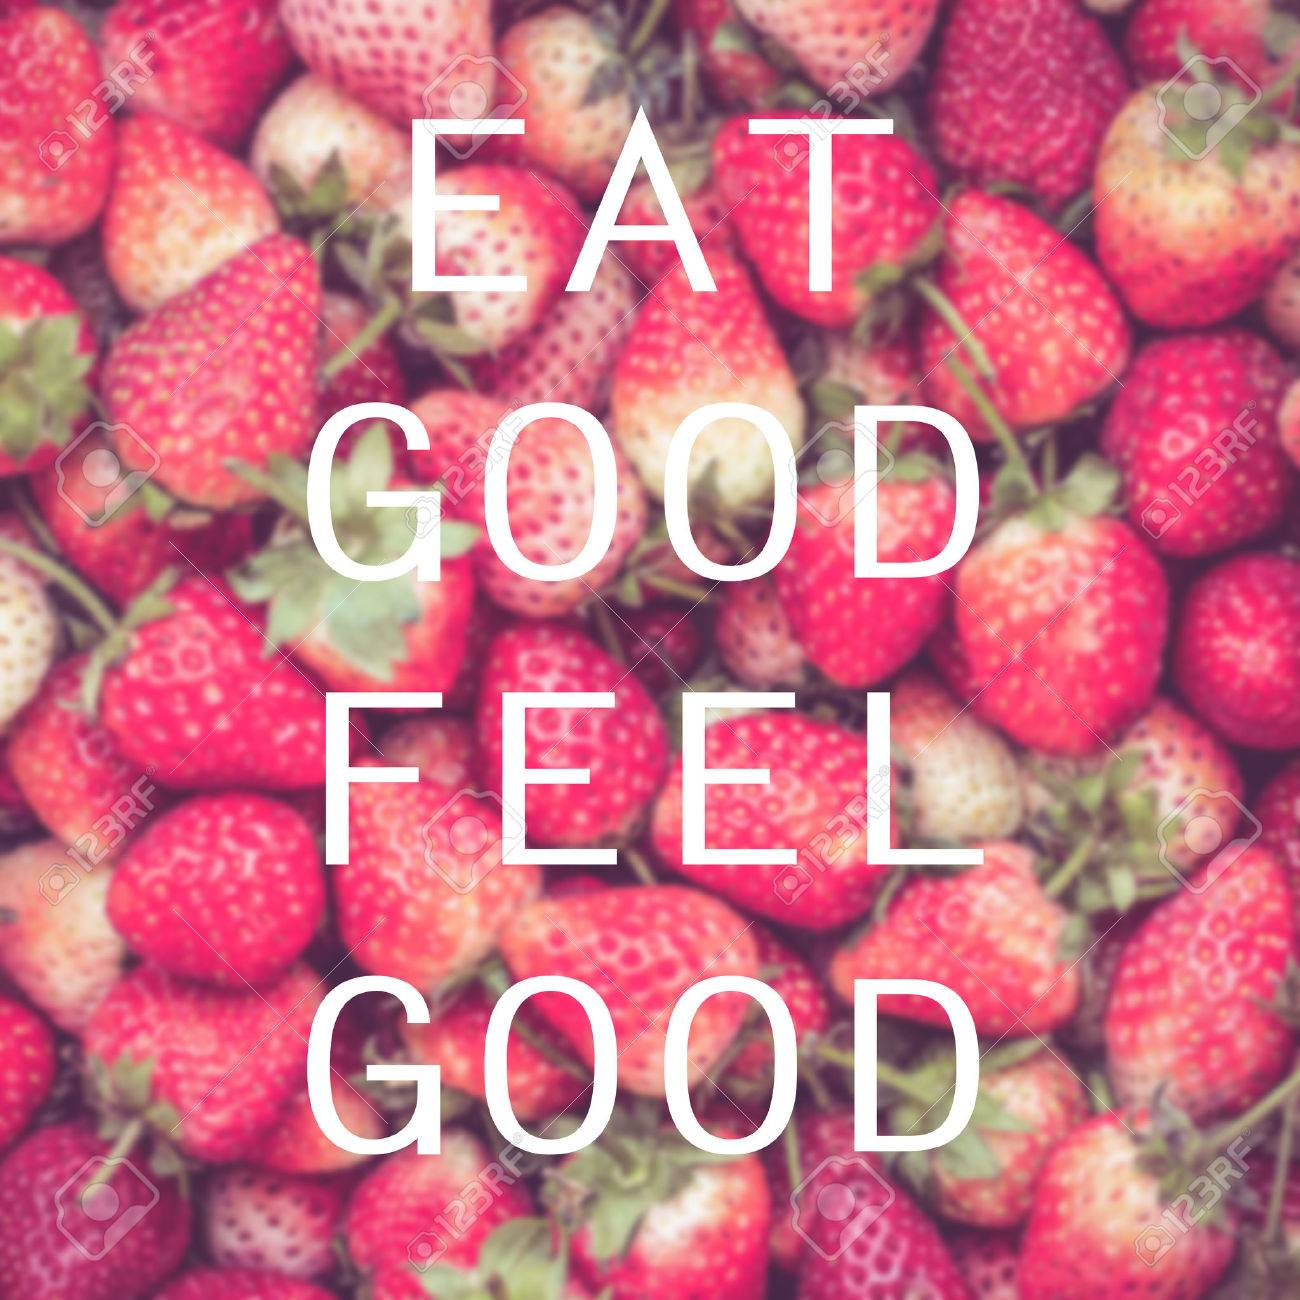 Good quote on strawberry background , Eat good feel good Stock Photo - 43163342